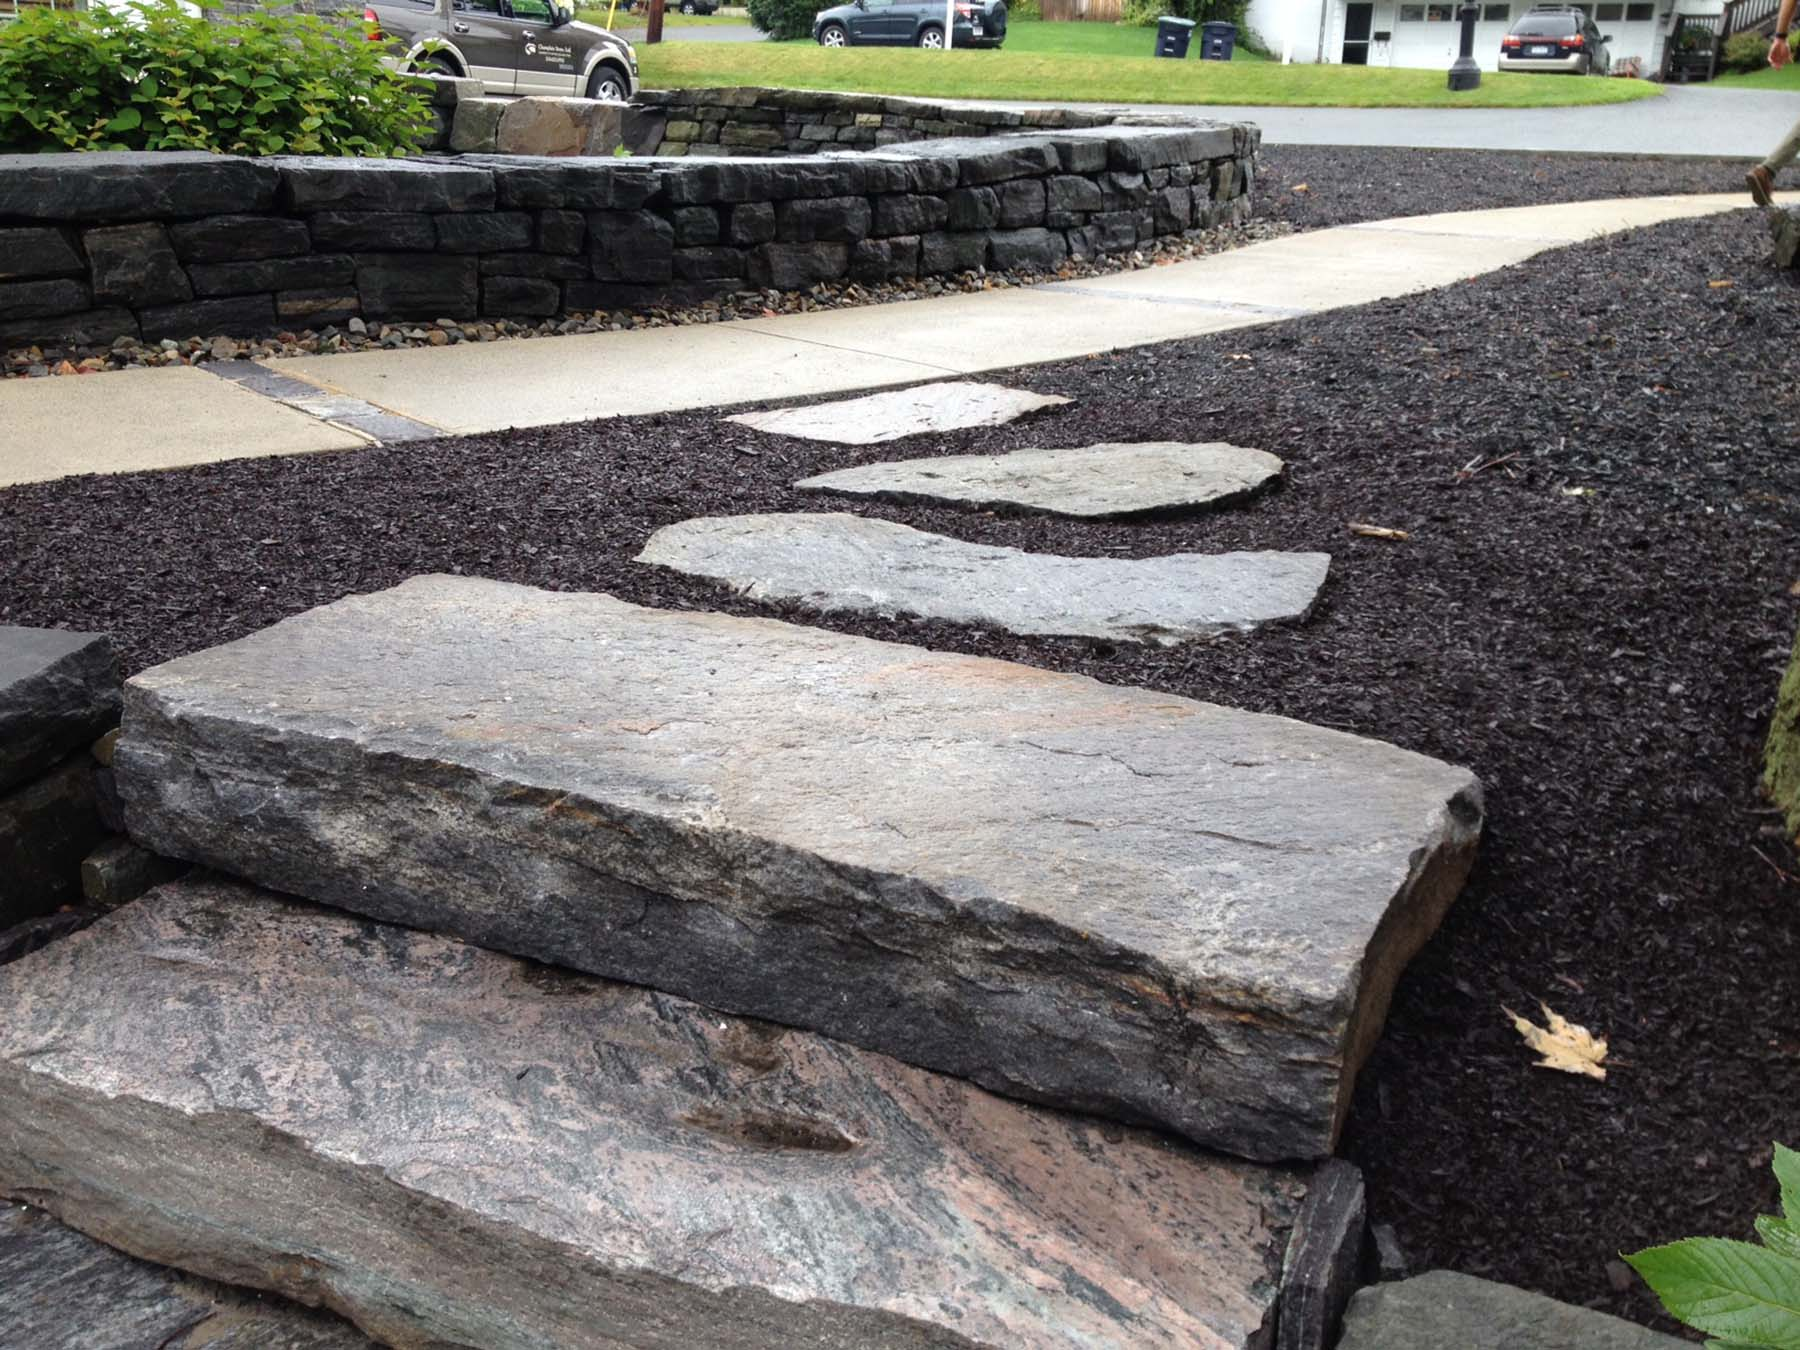 Ticonderoga Granite Flagging and Stairs outdoors